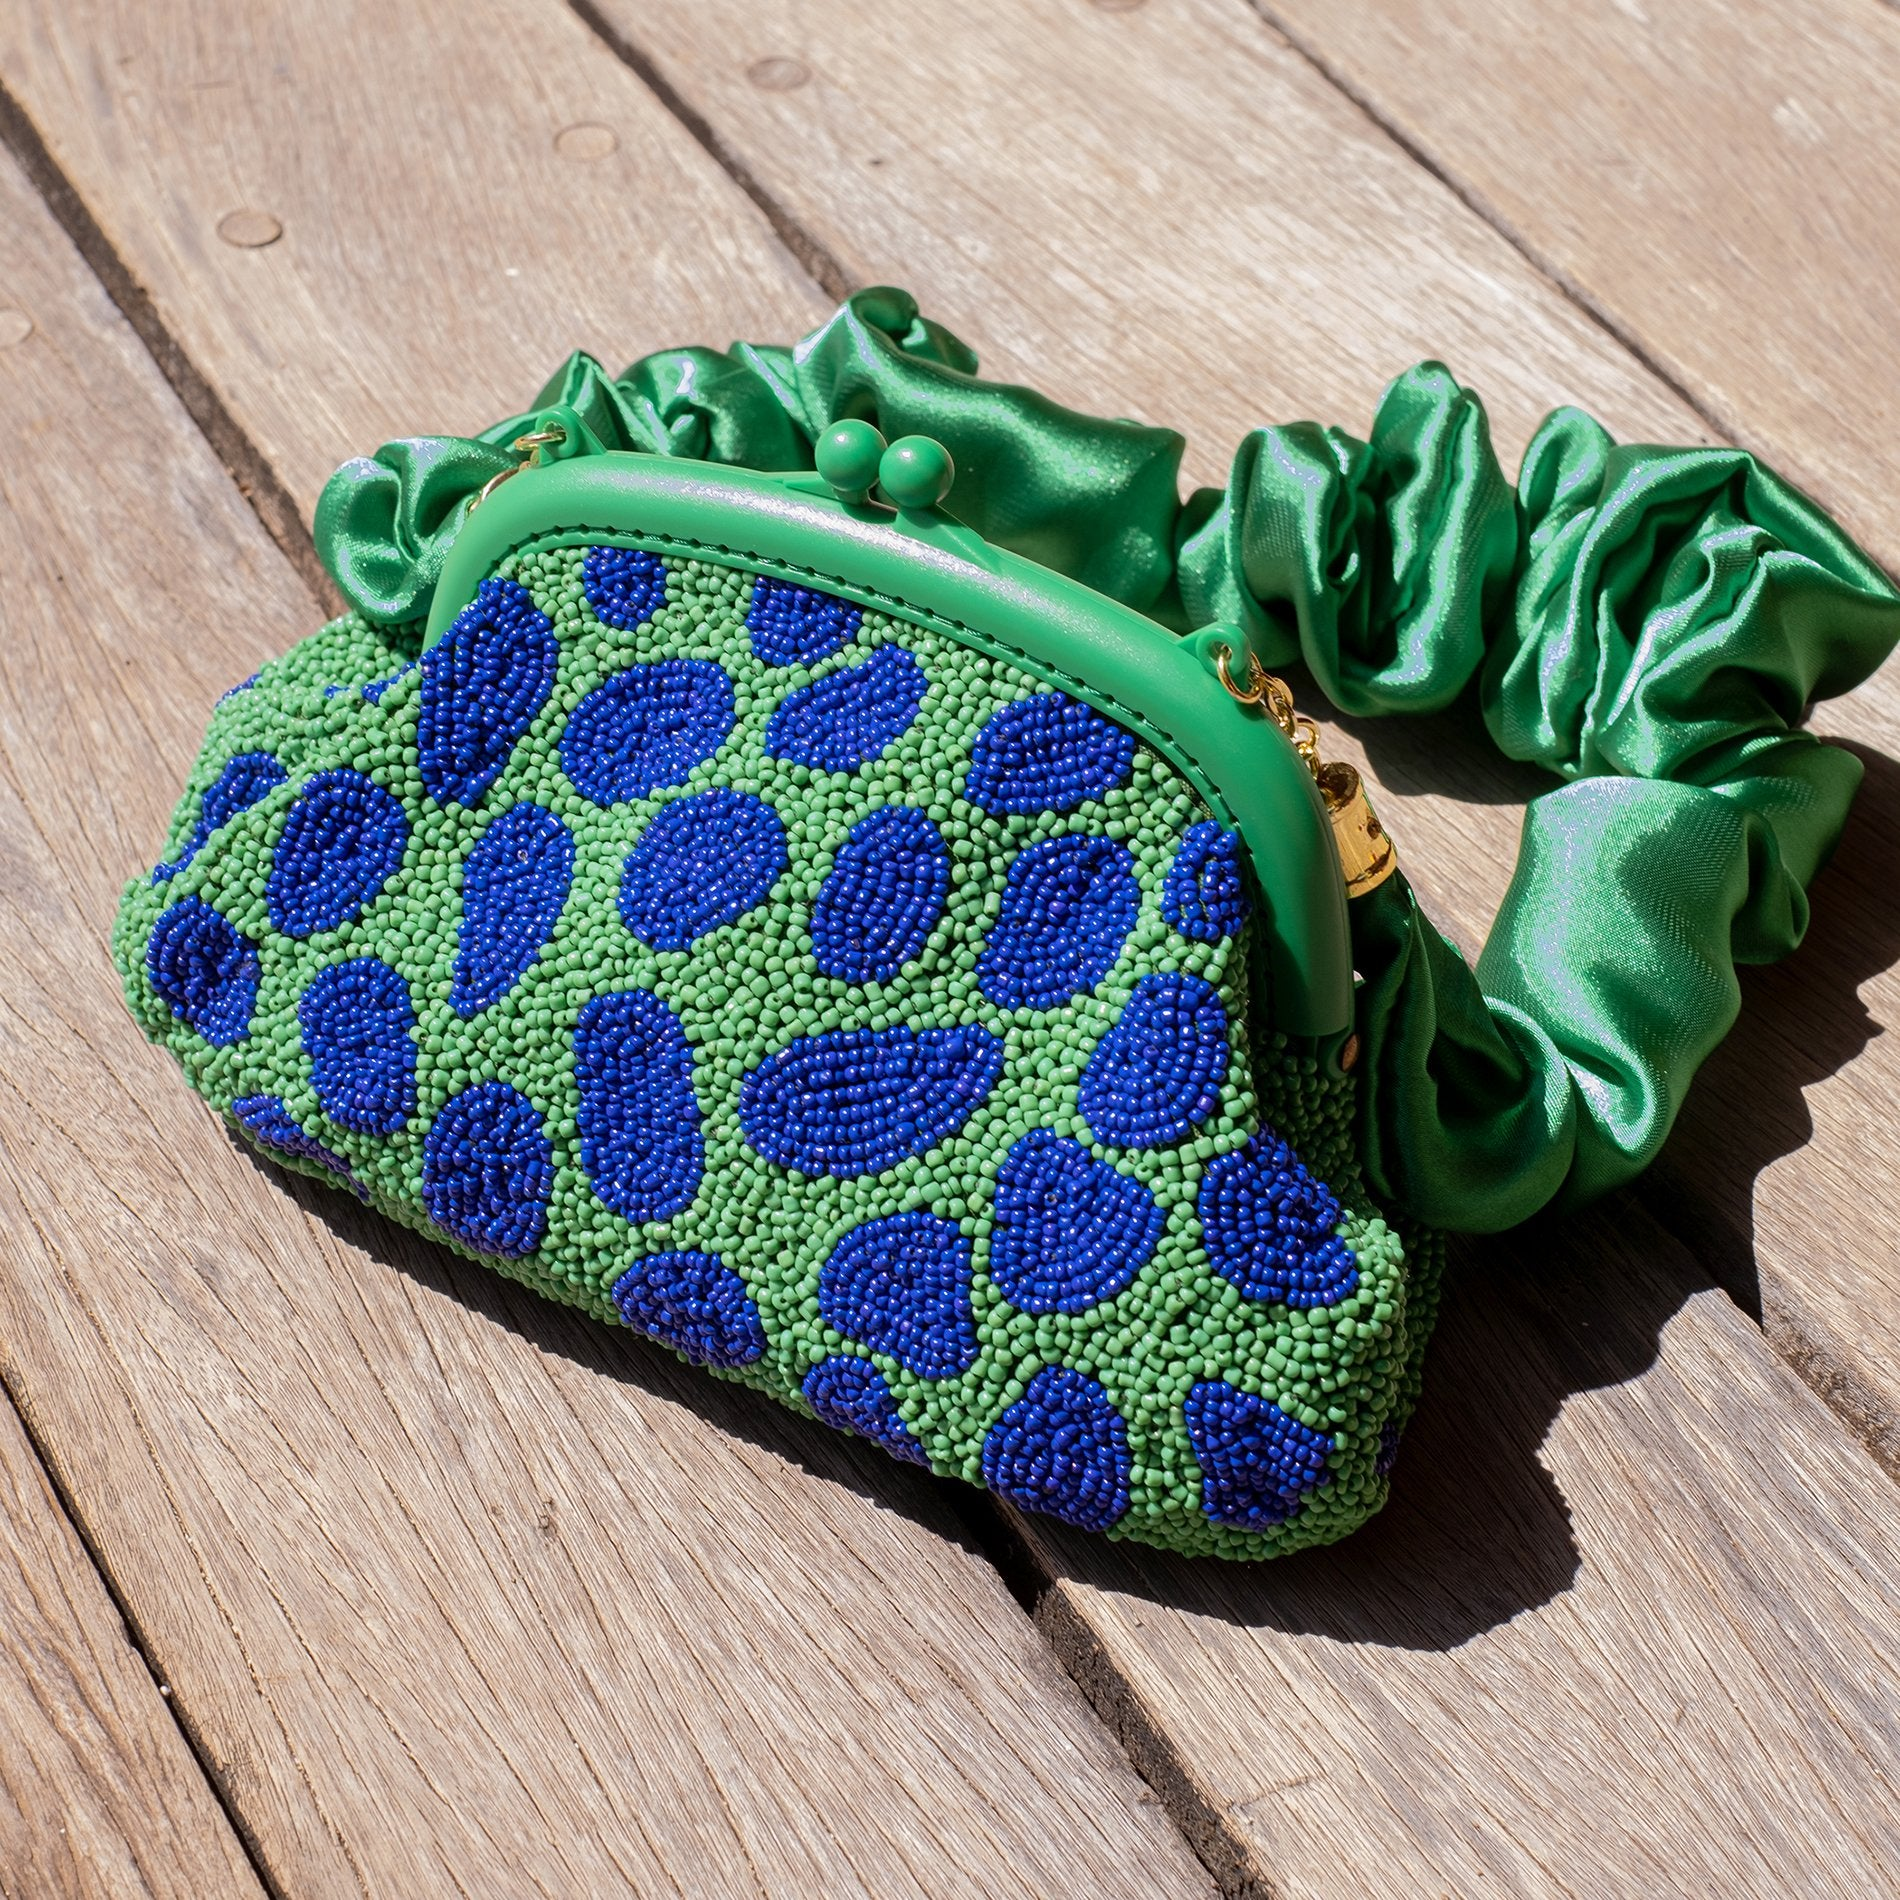 Arnoldi Jade Hand-beaded Clutch in Lush Green & Blue